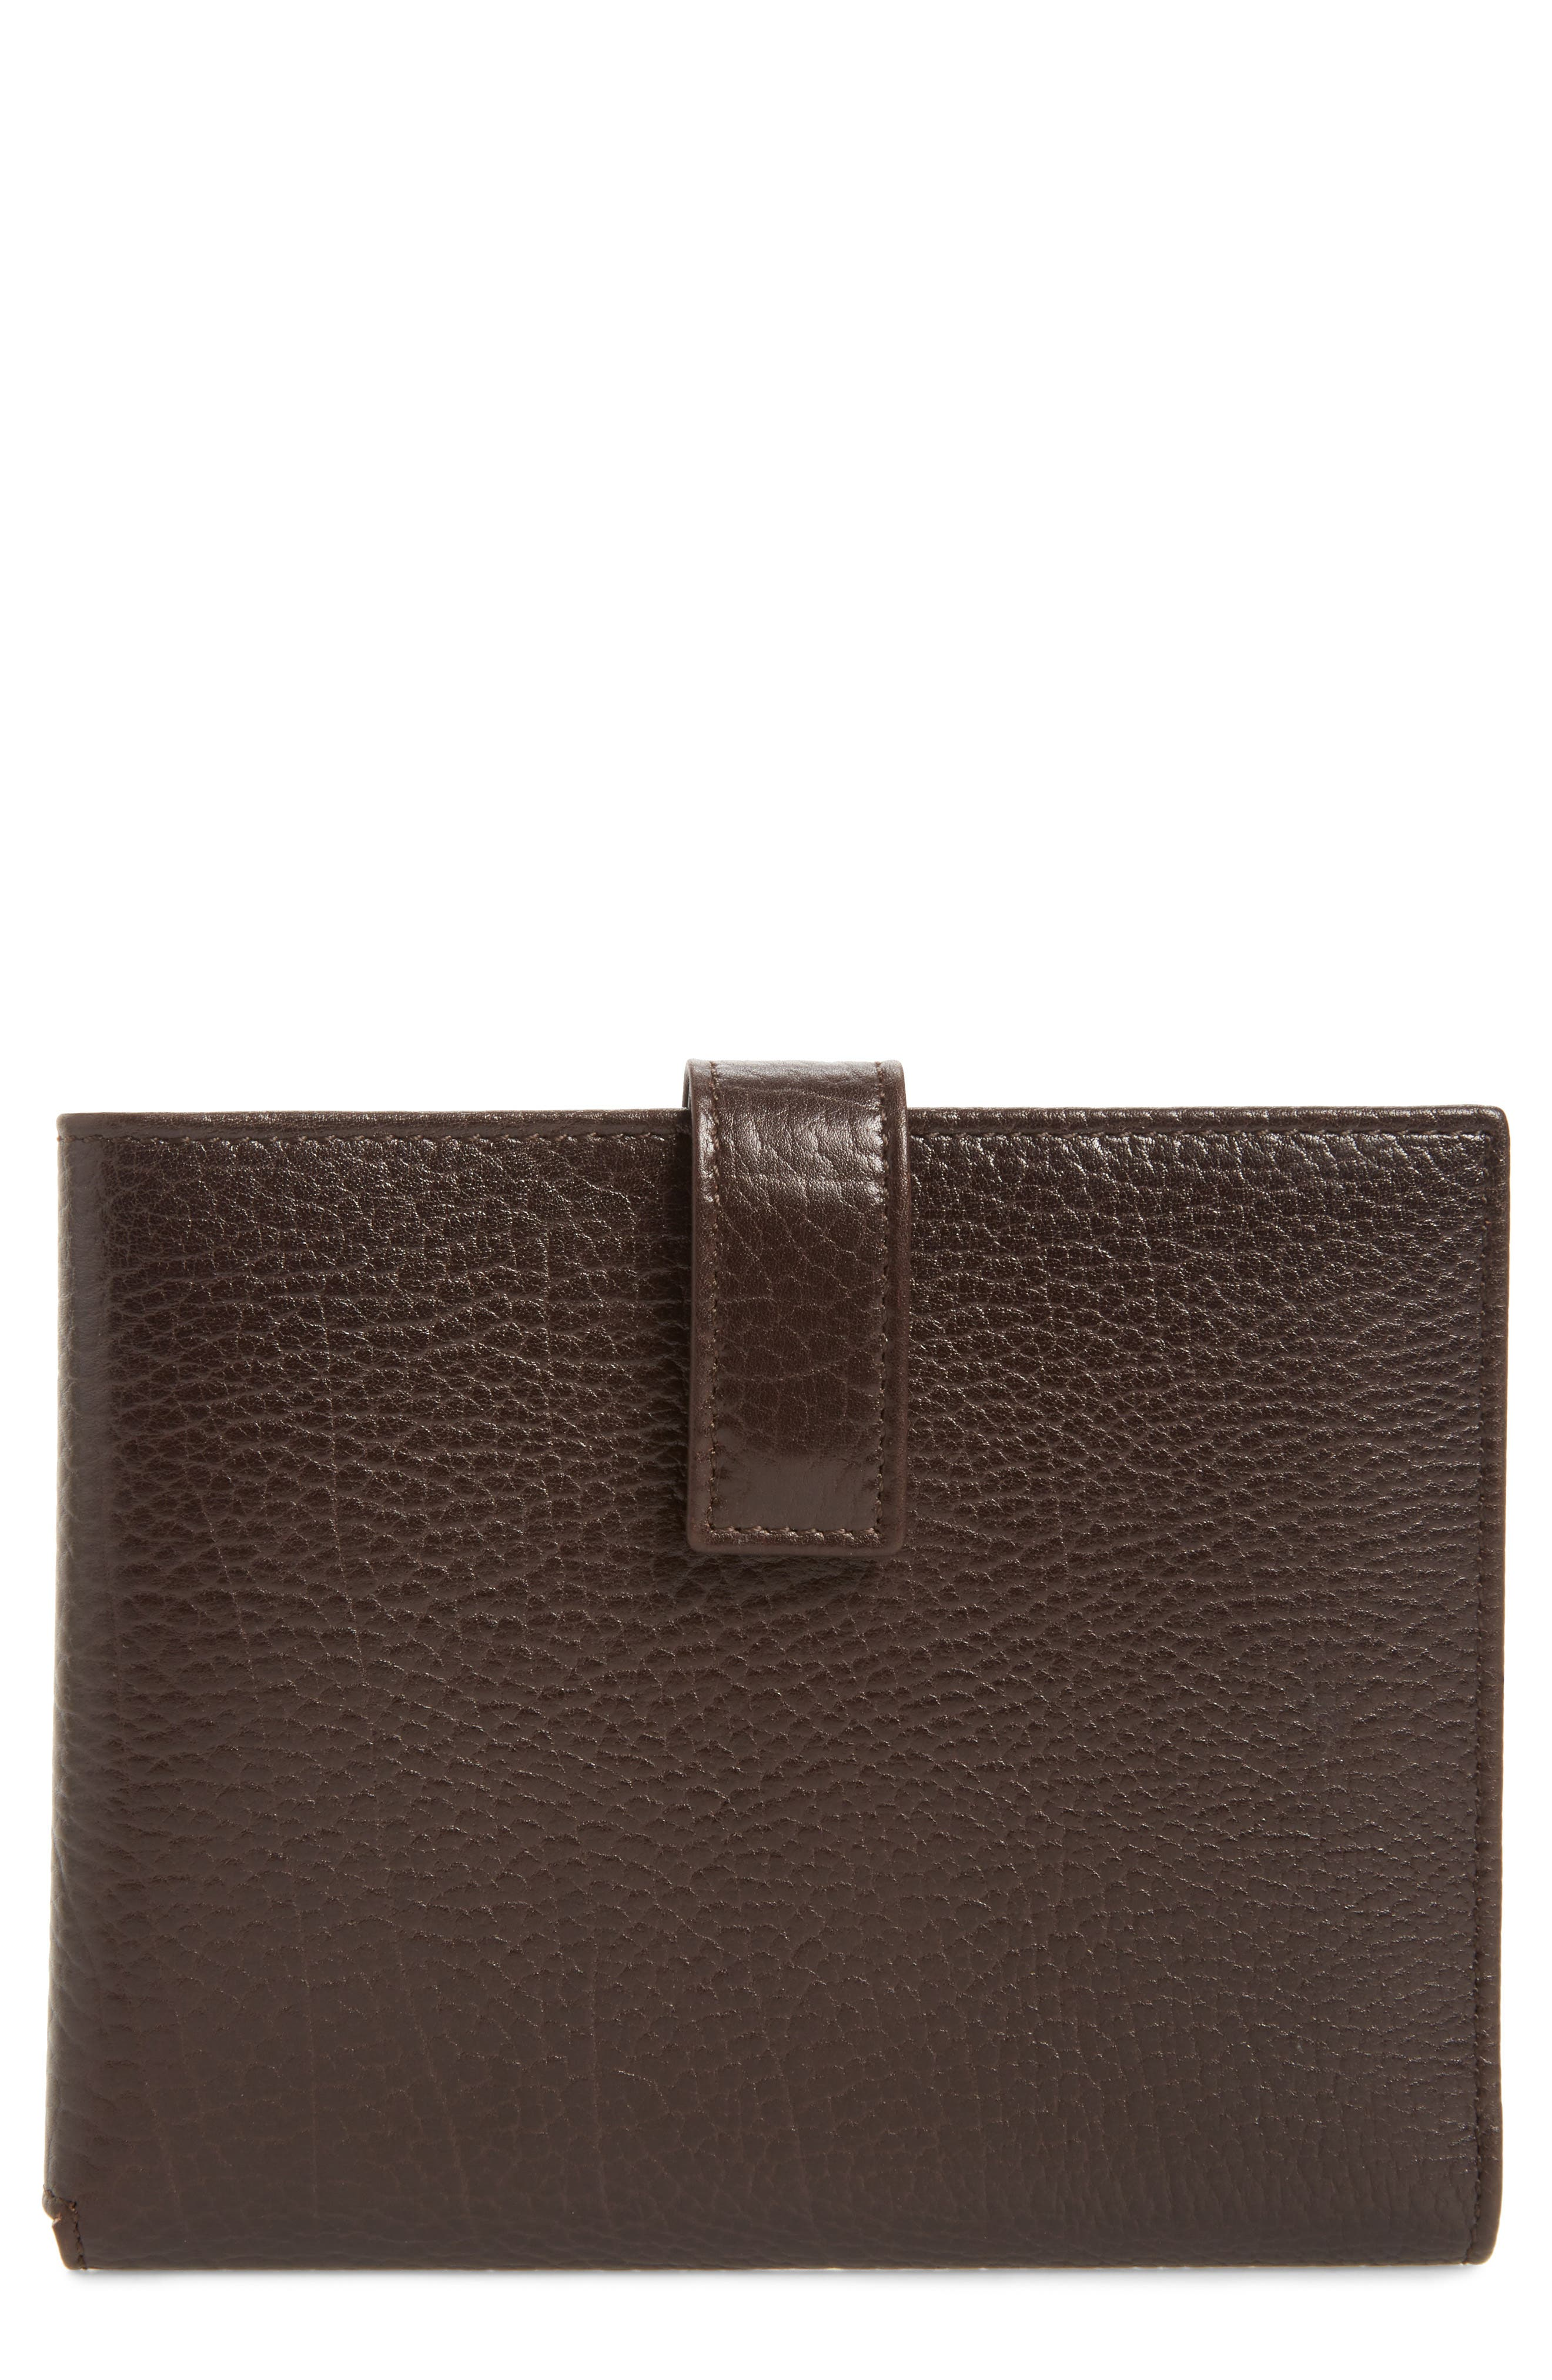 Perseo Leather Travel Wallet,                         Main,                         color, Brown